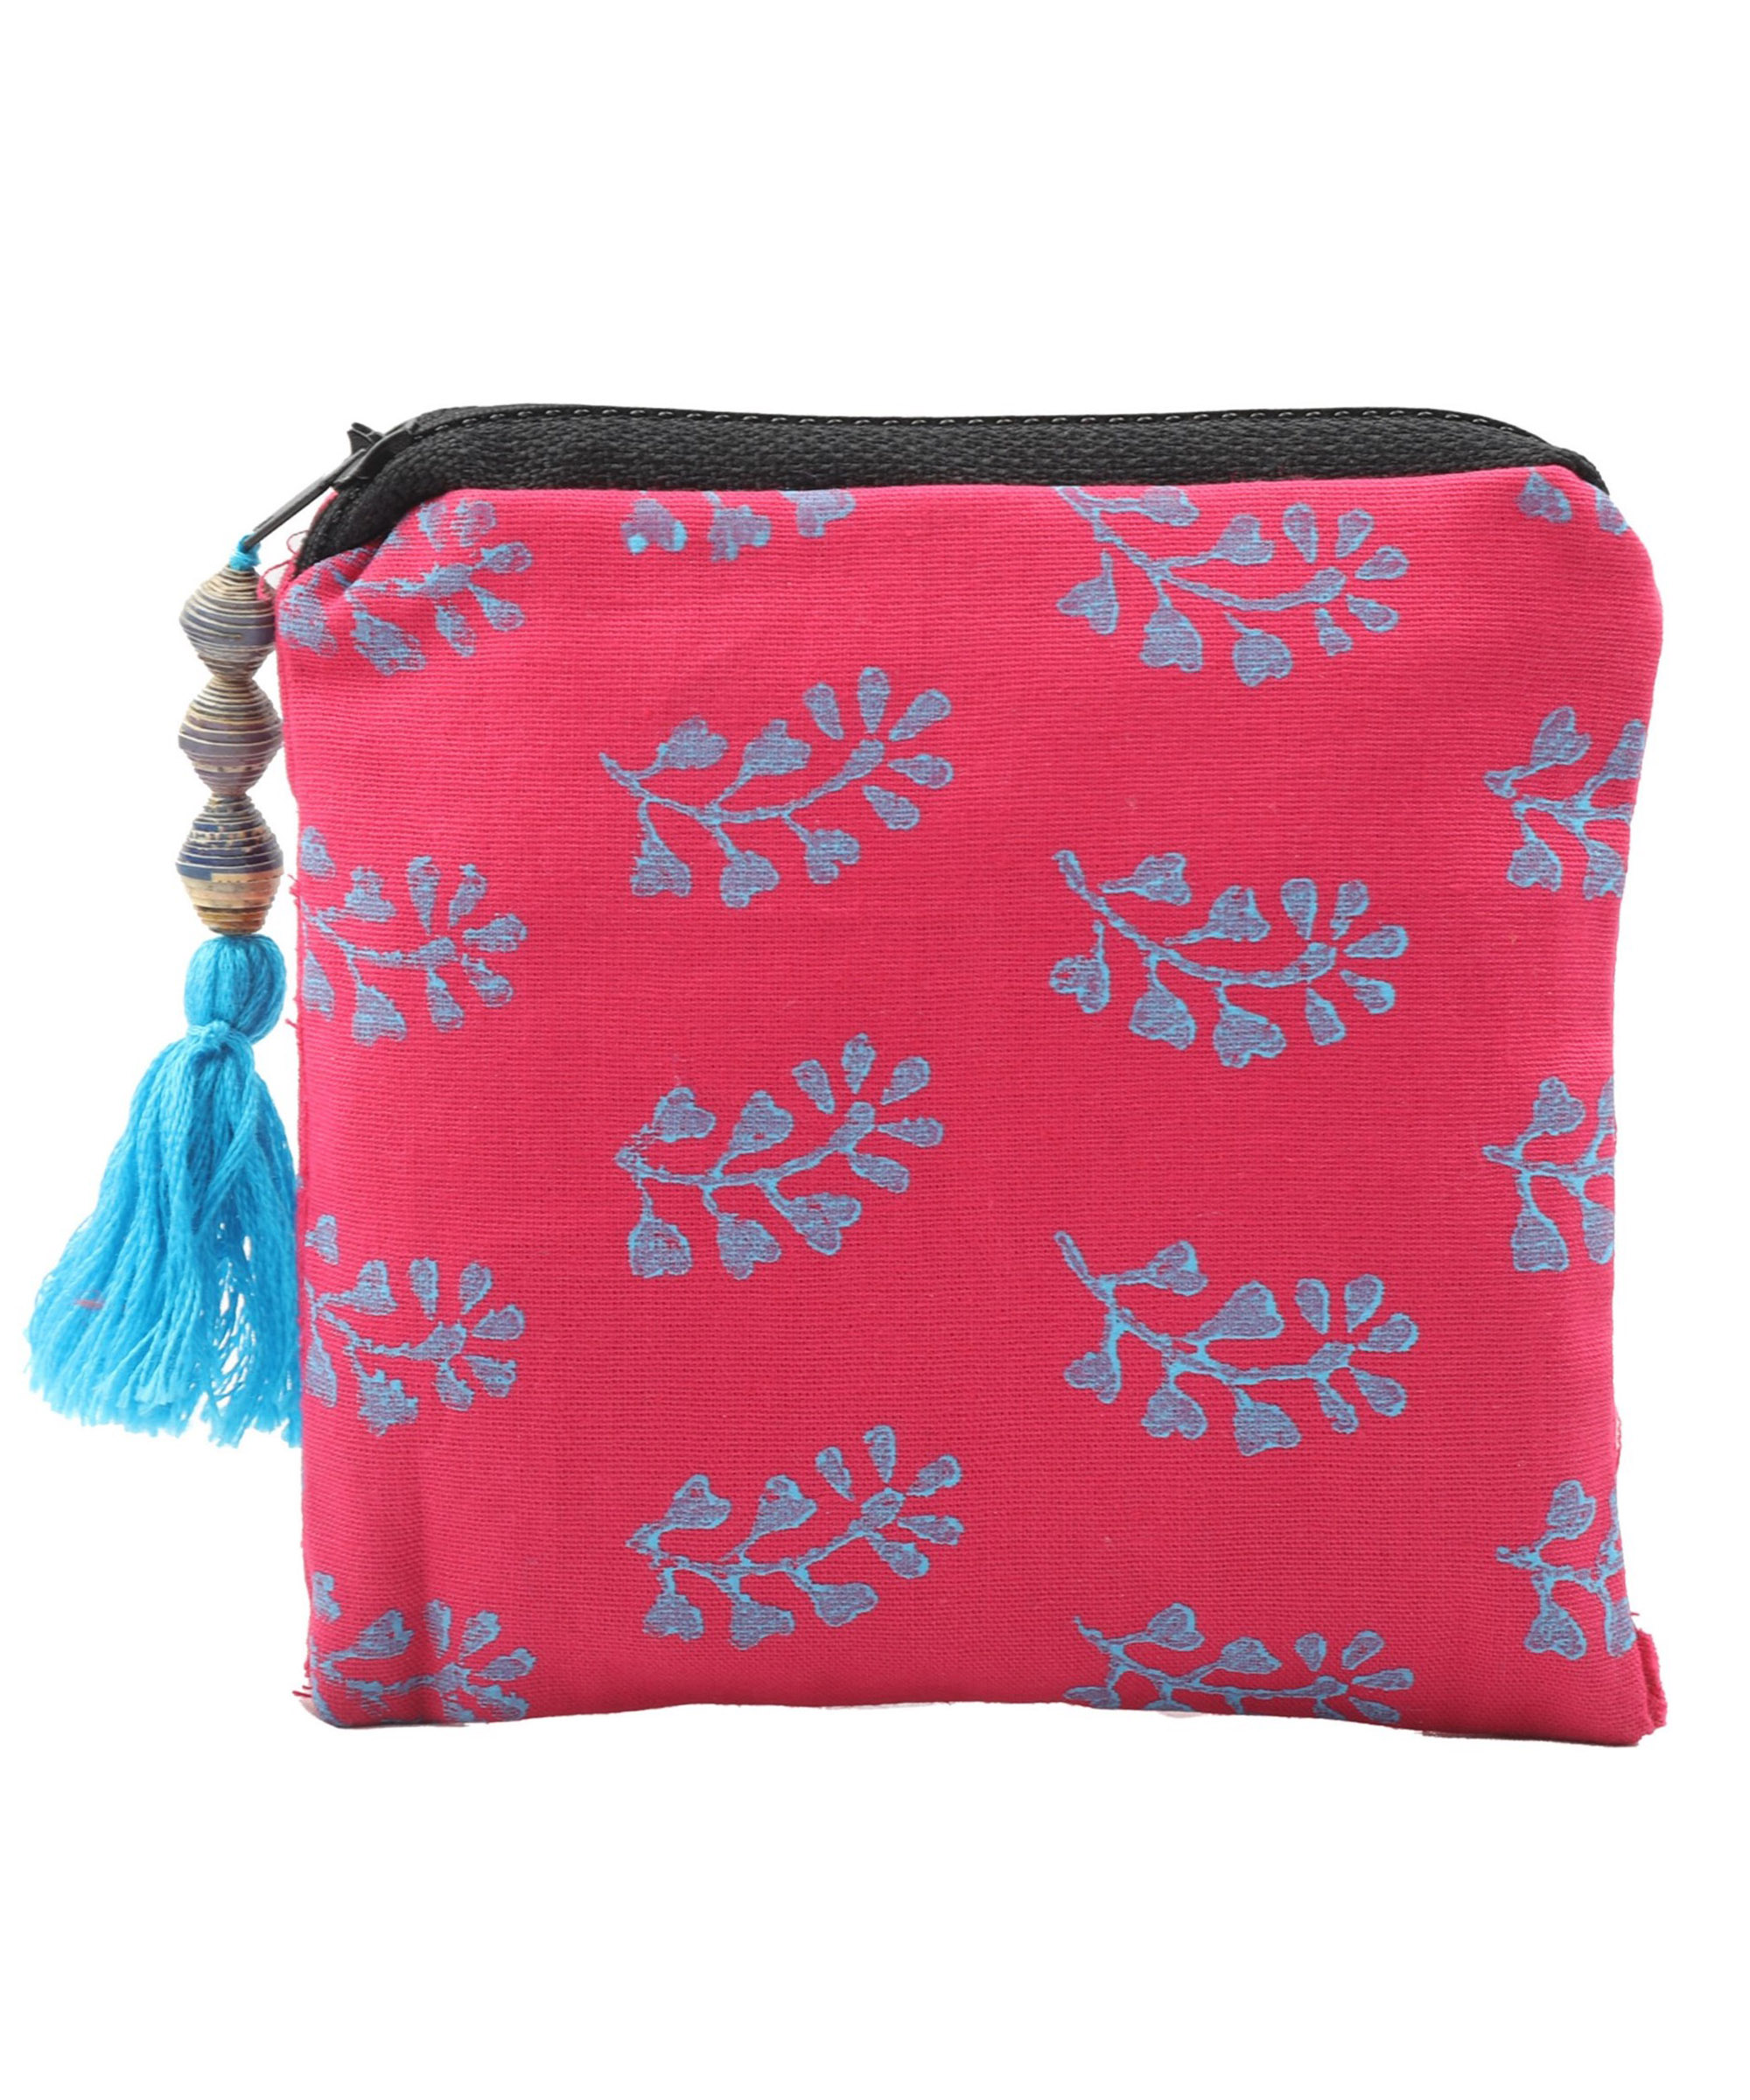 Patchwork Block Printed Coin Pouch, Poplin Cotton Fabric (Set of 4) Slider Thumbnail 2/4